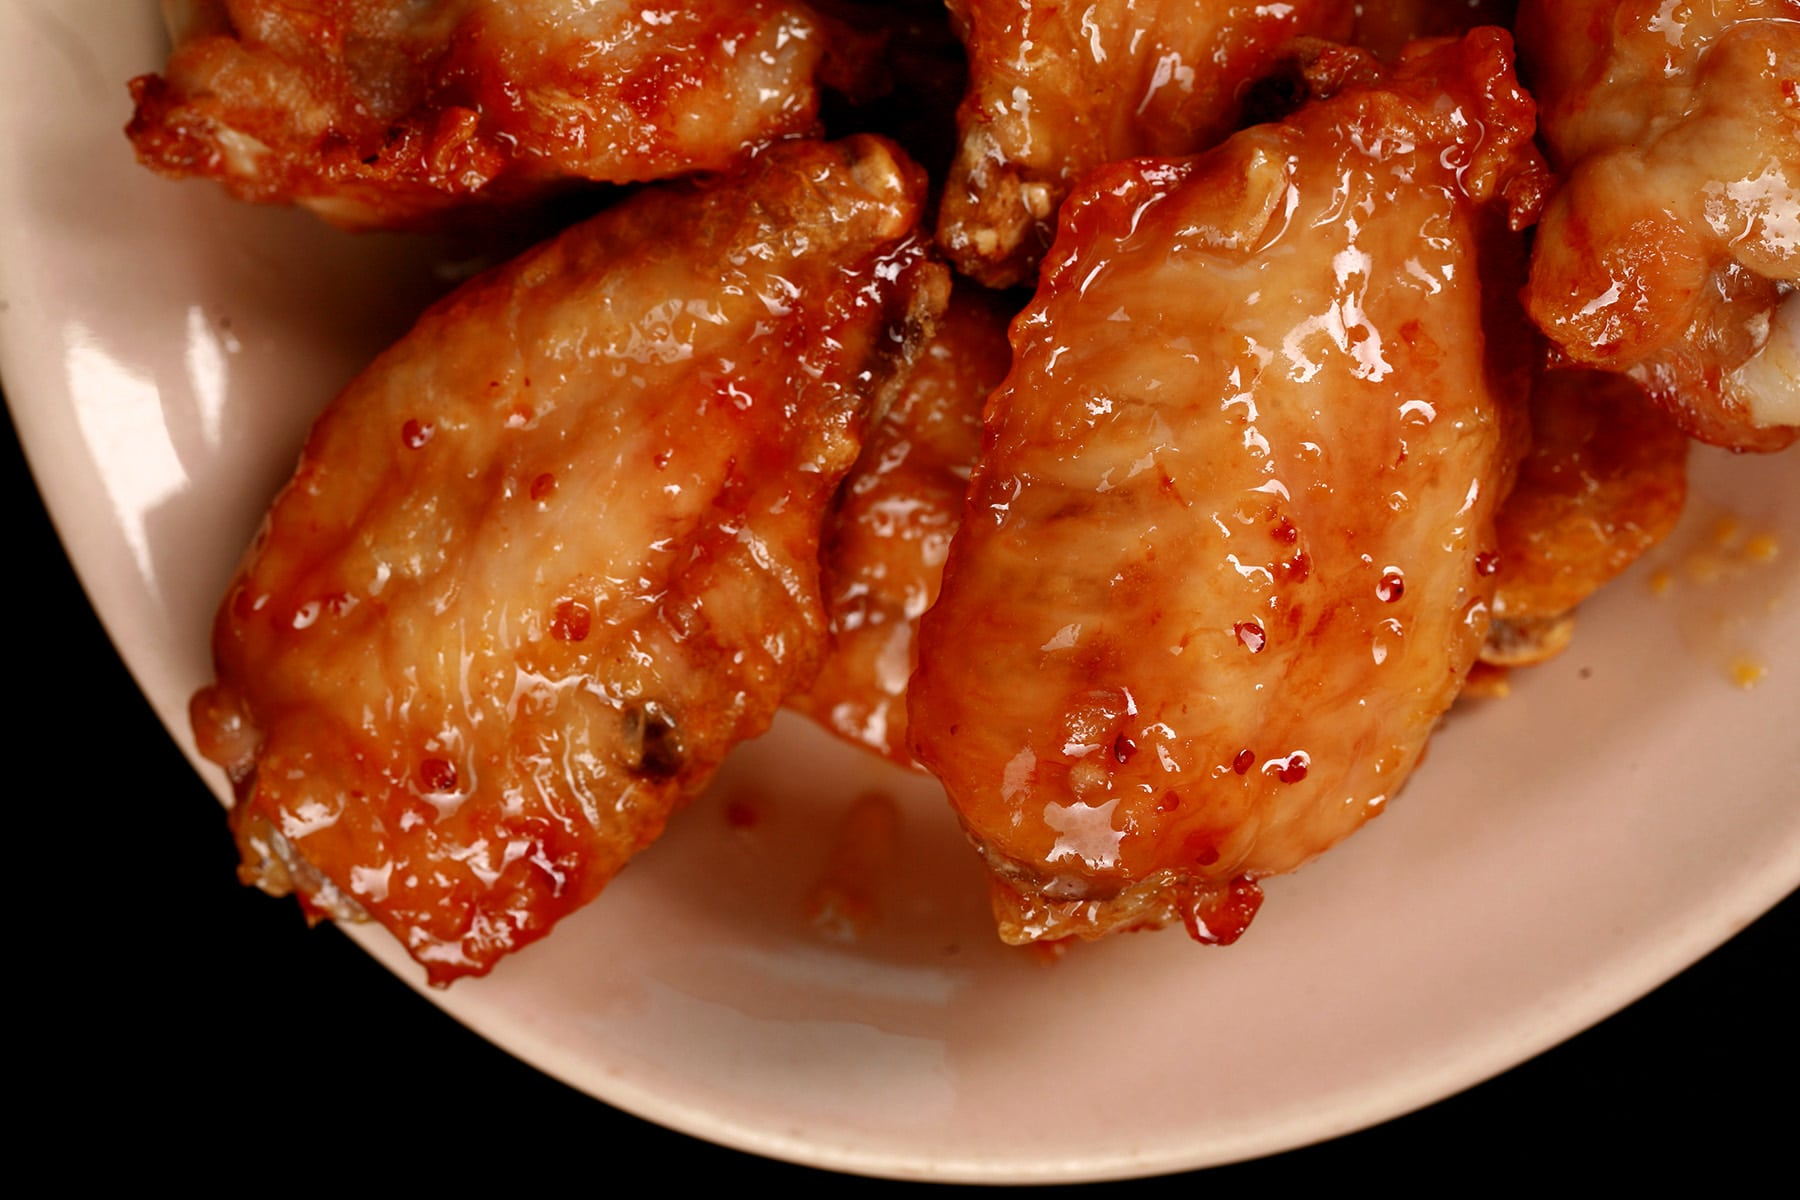 A small plate of maple dijon glazed wings.